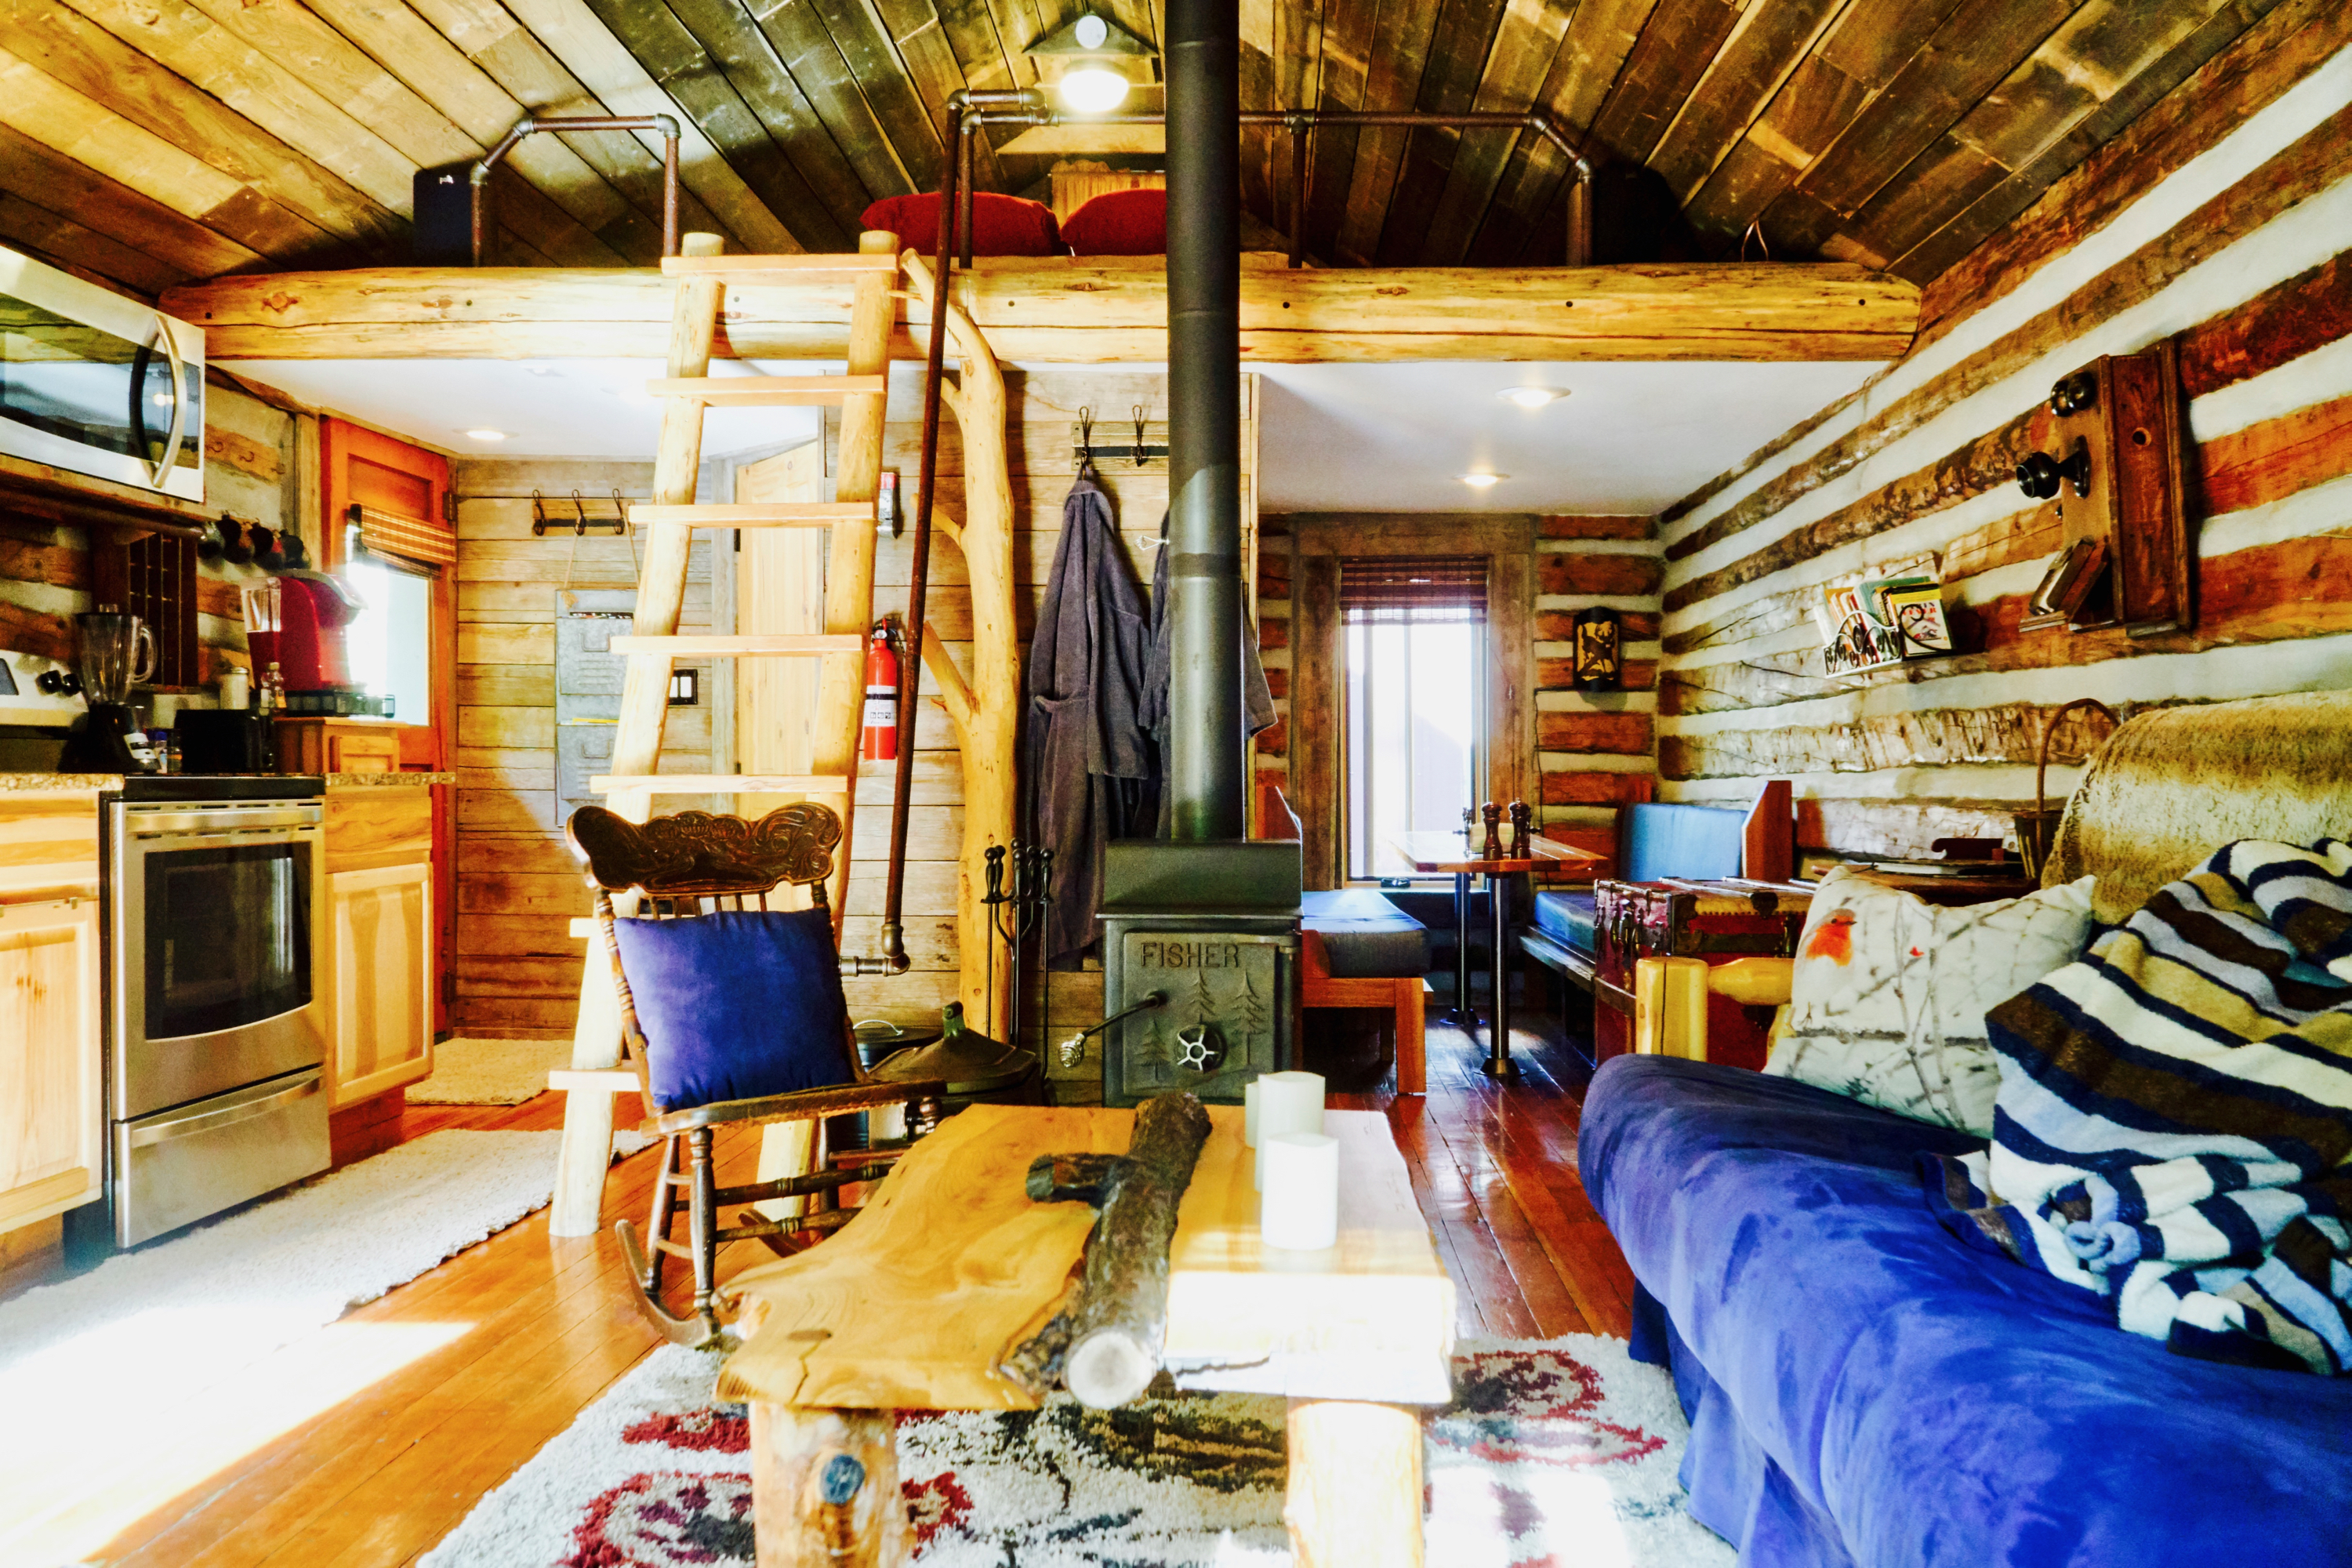 cabin fall elegant about springs respond with for accommodations dunton glamping alpine providing rustically stories and glamorous com hot their cresto echo cabins by setting featured to guests ranch majestic cozy